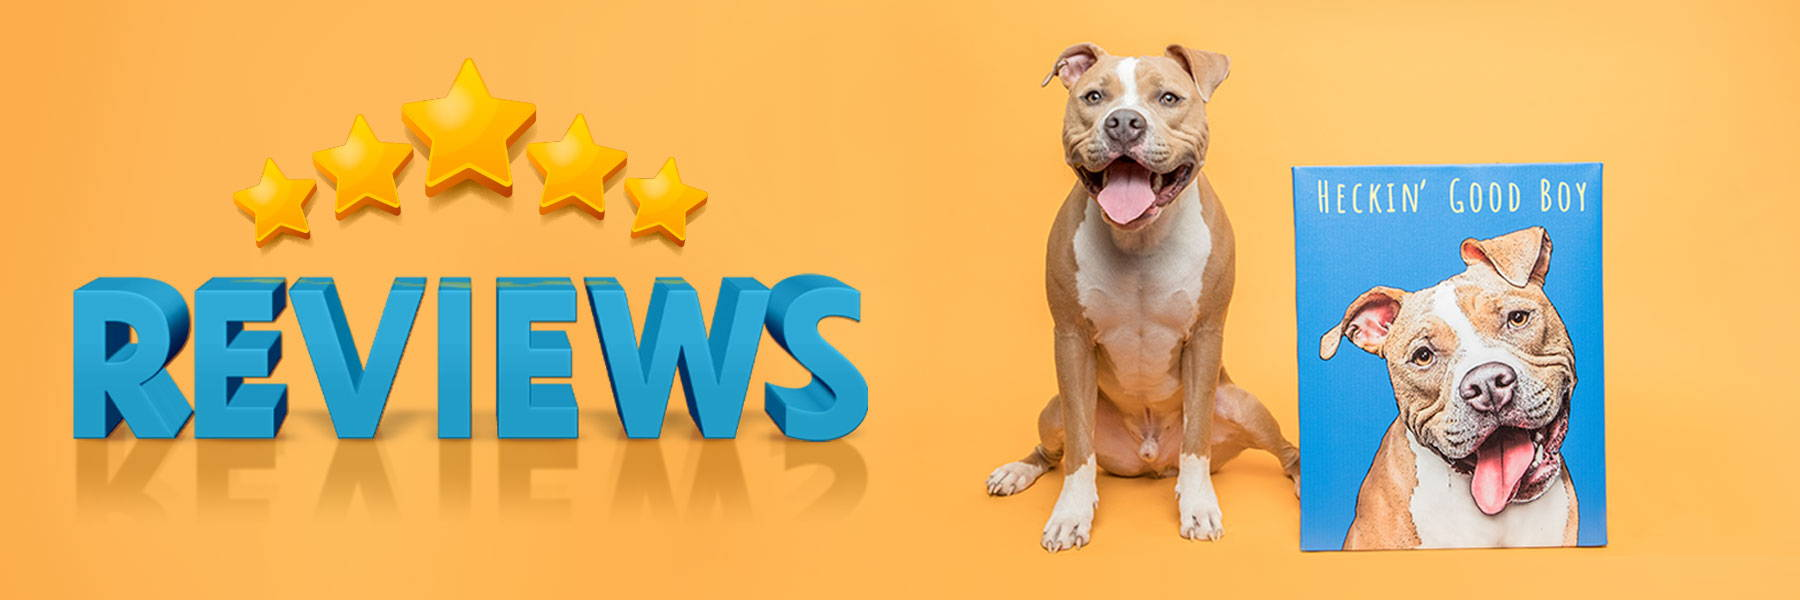 pop your pup reviews banner image pitbull